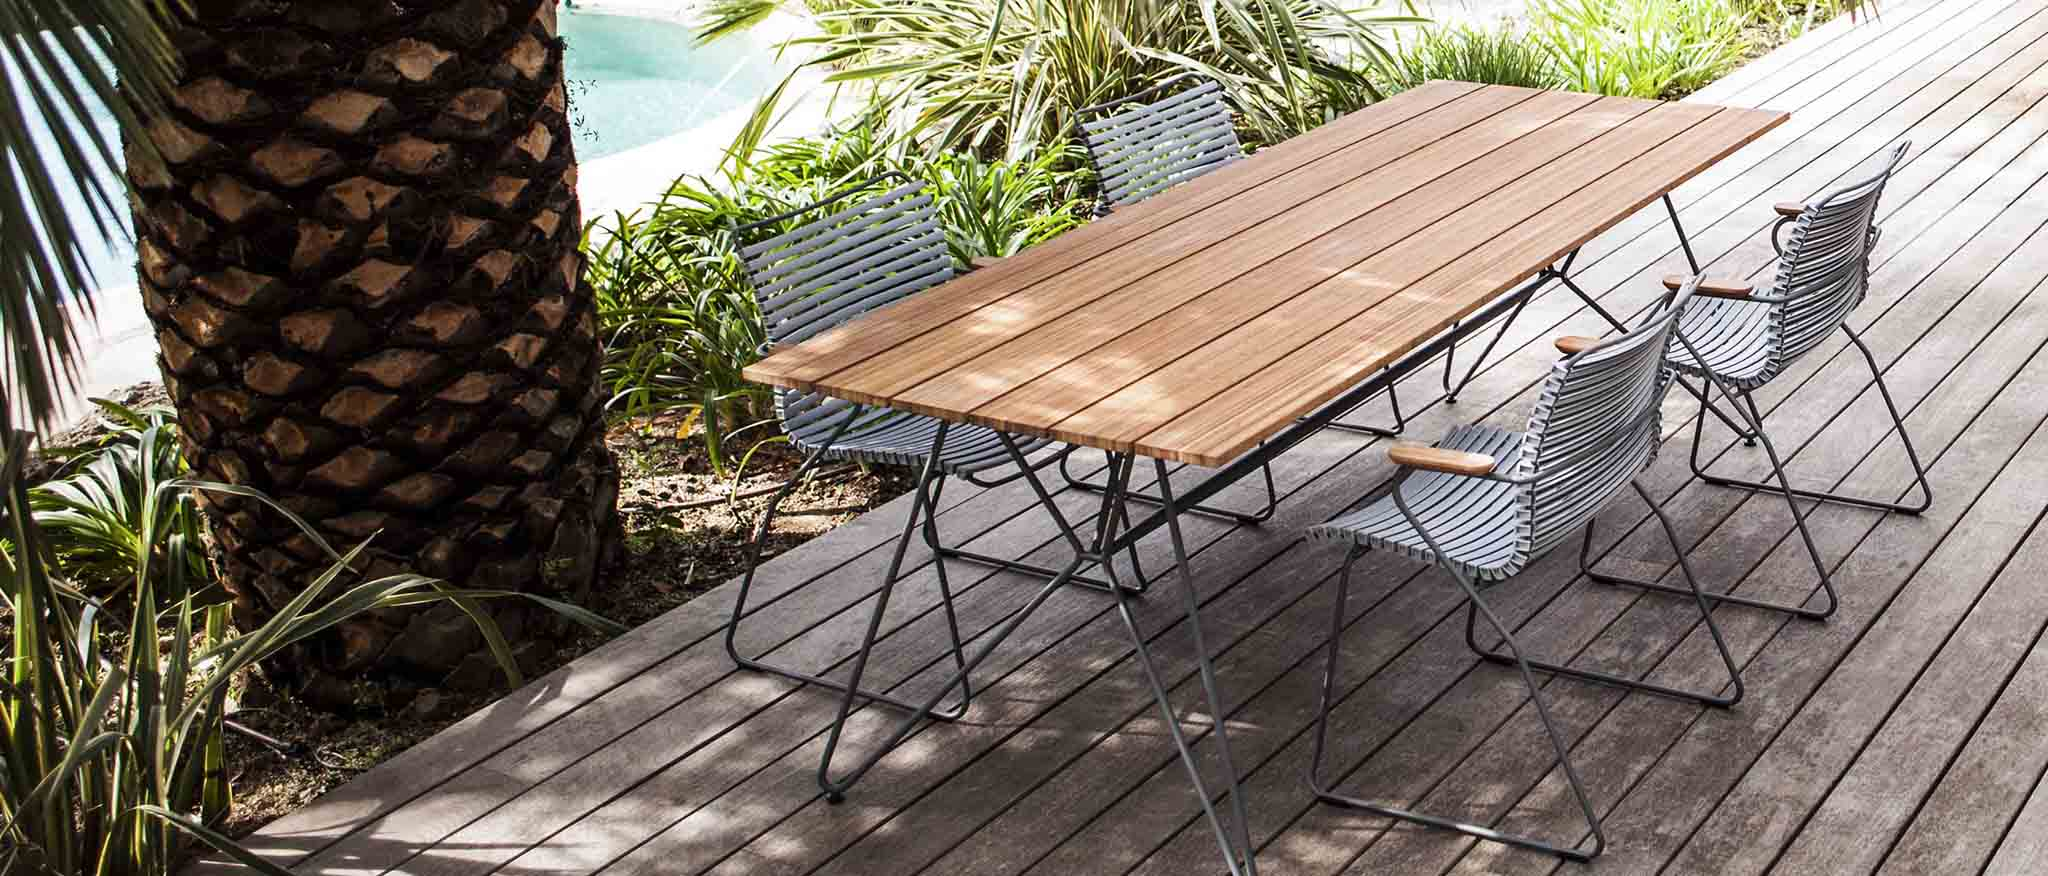 recangle-dining-table-playnk